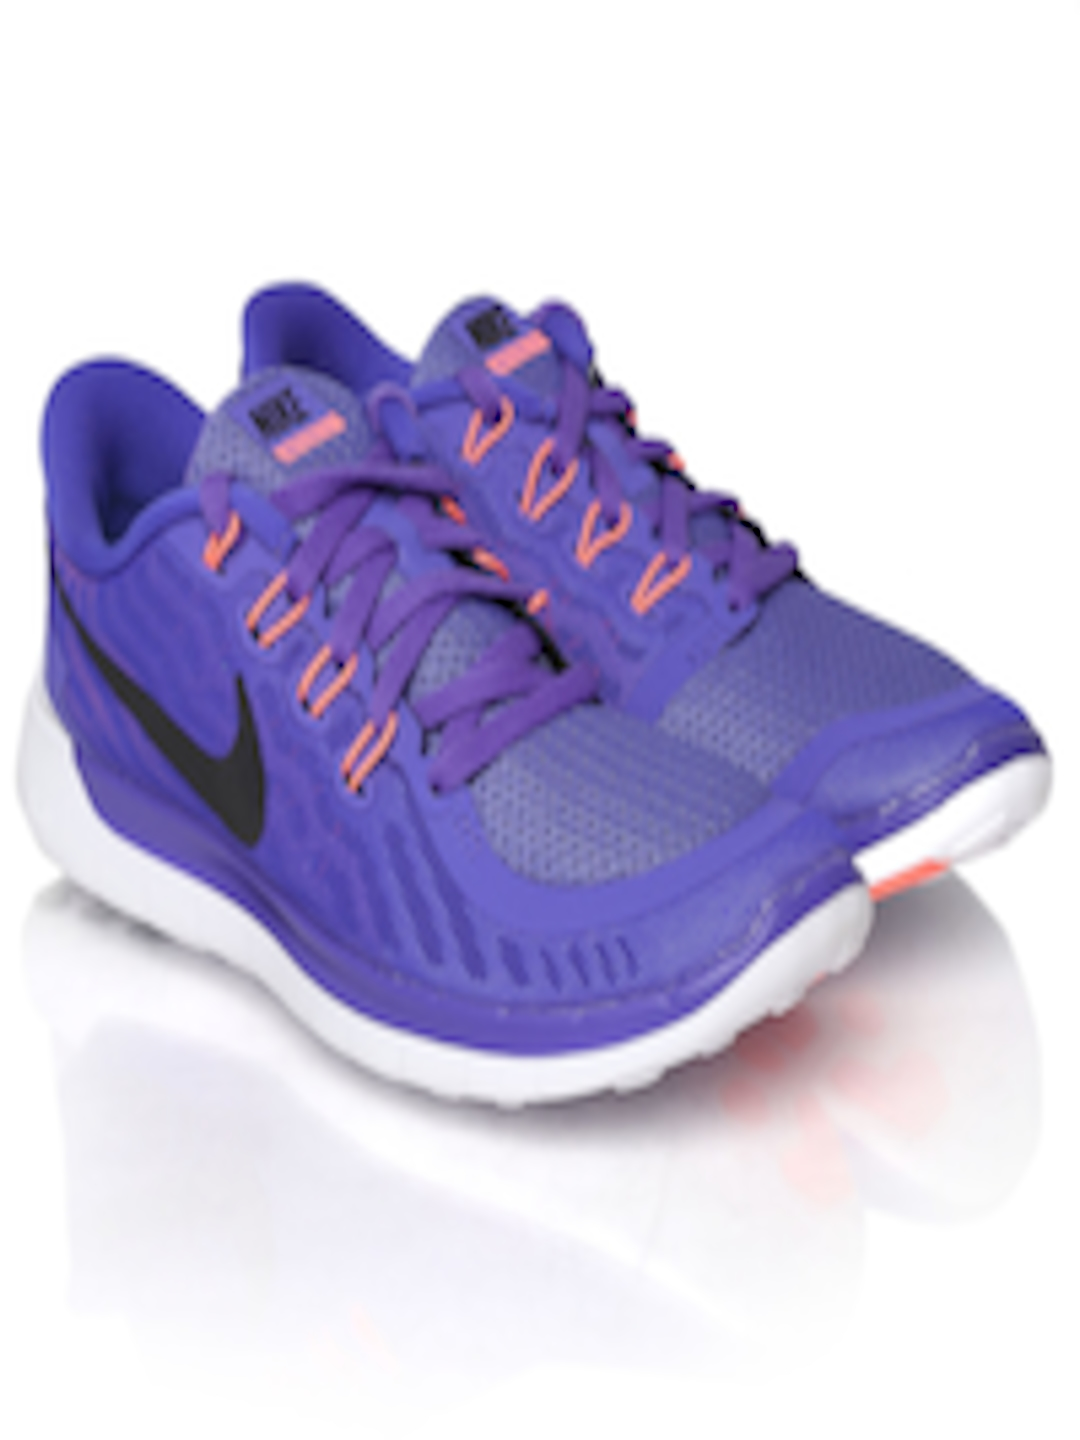 962f6fbd393a Buy Nike Women Purple Free 5.0 Running Shoes - Sports Shoes for ...